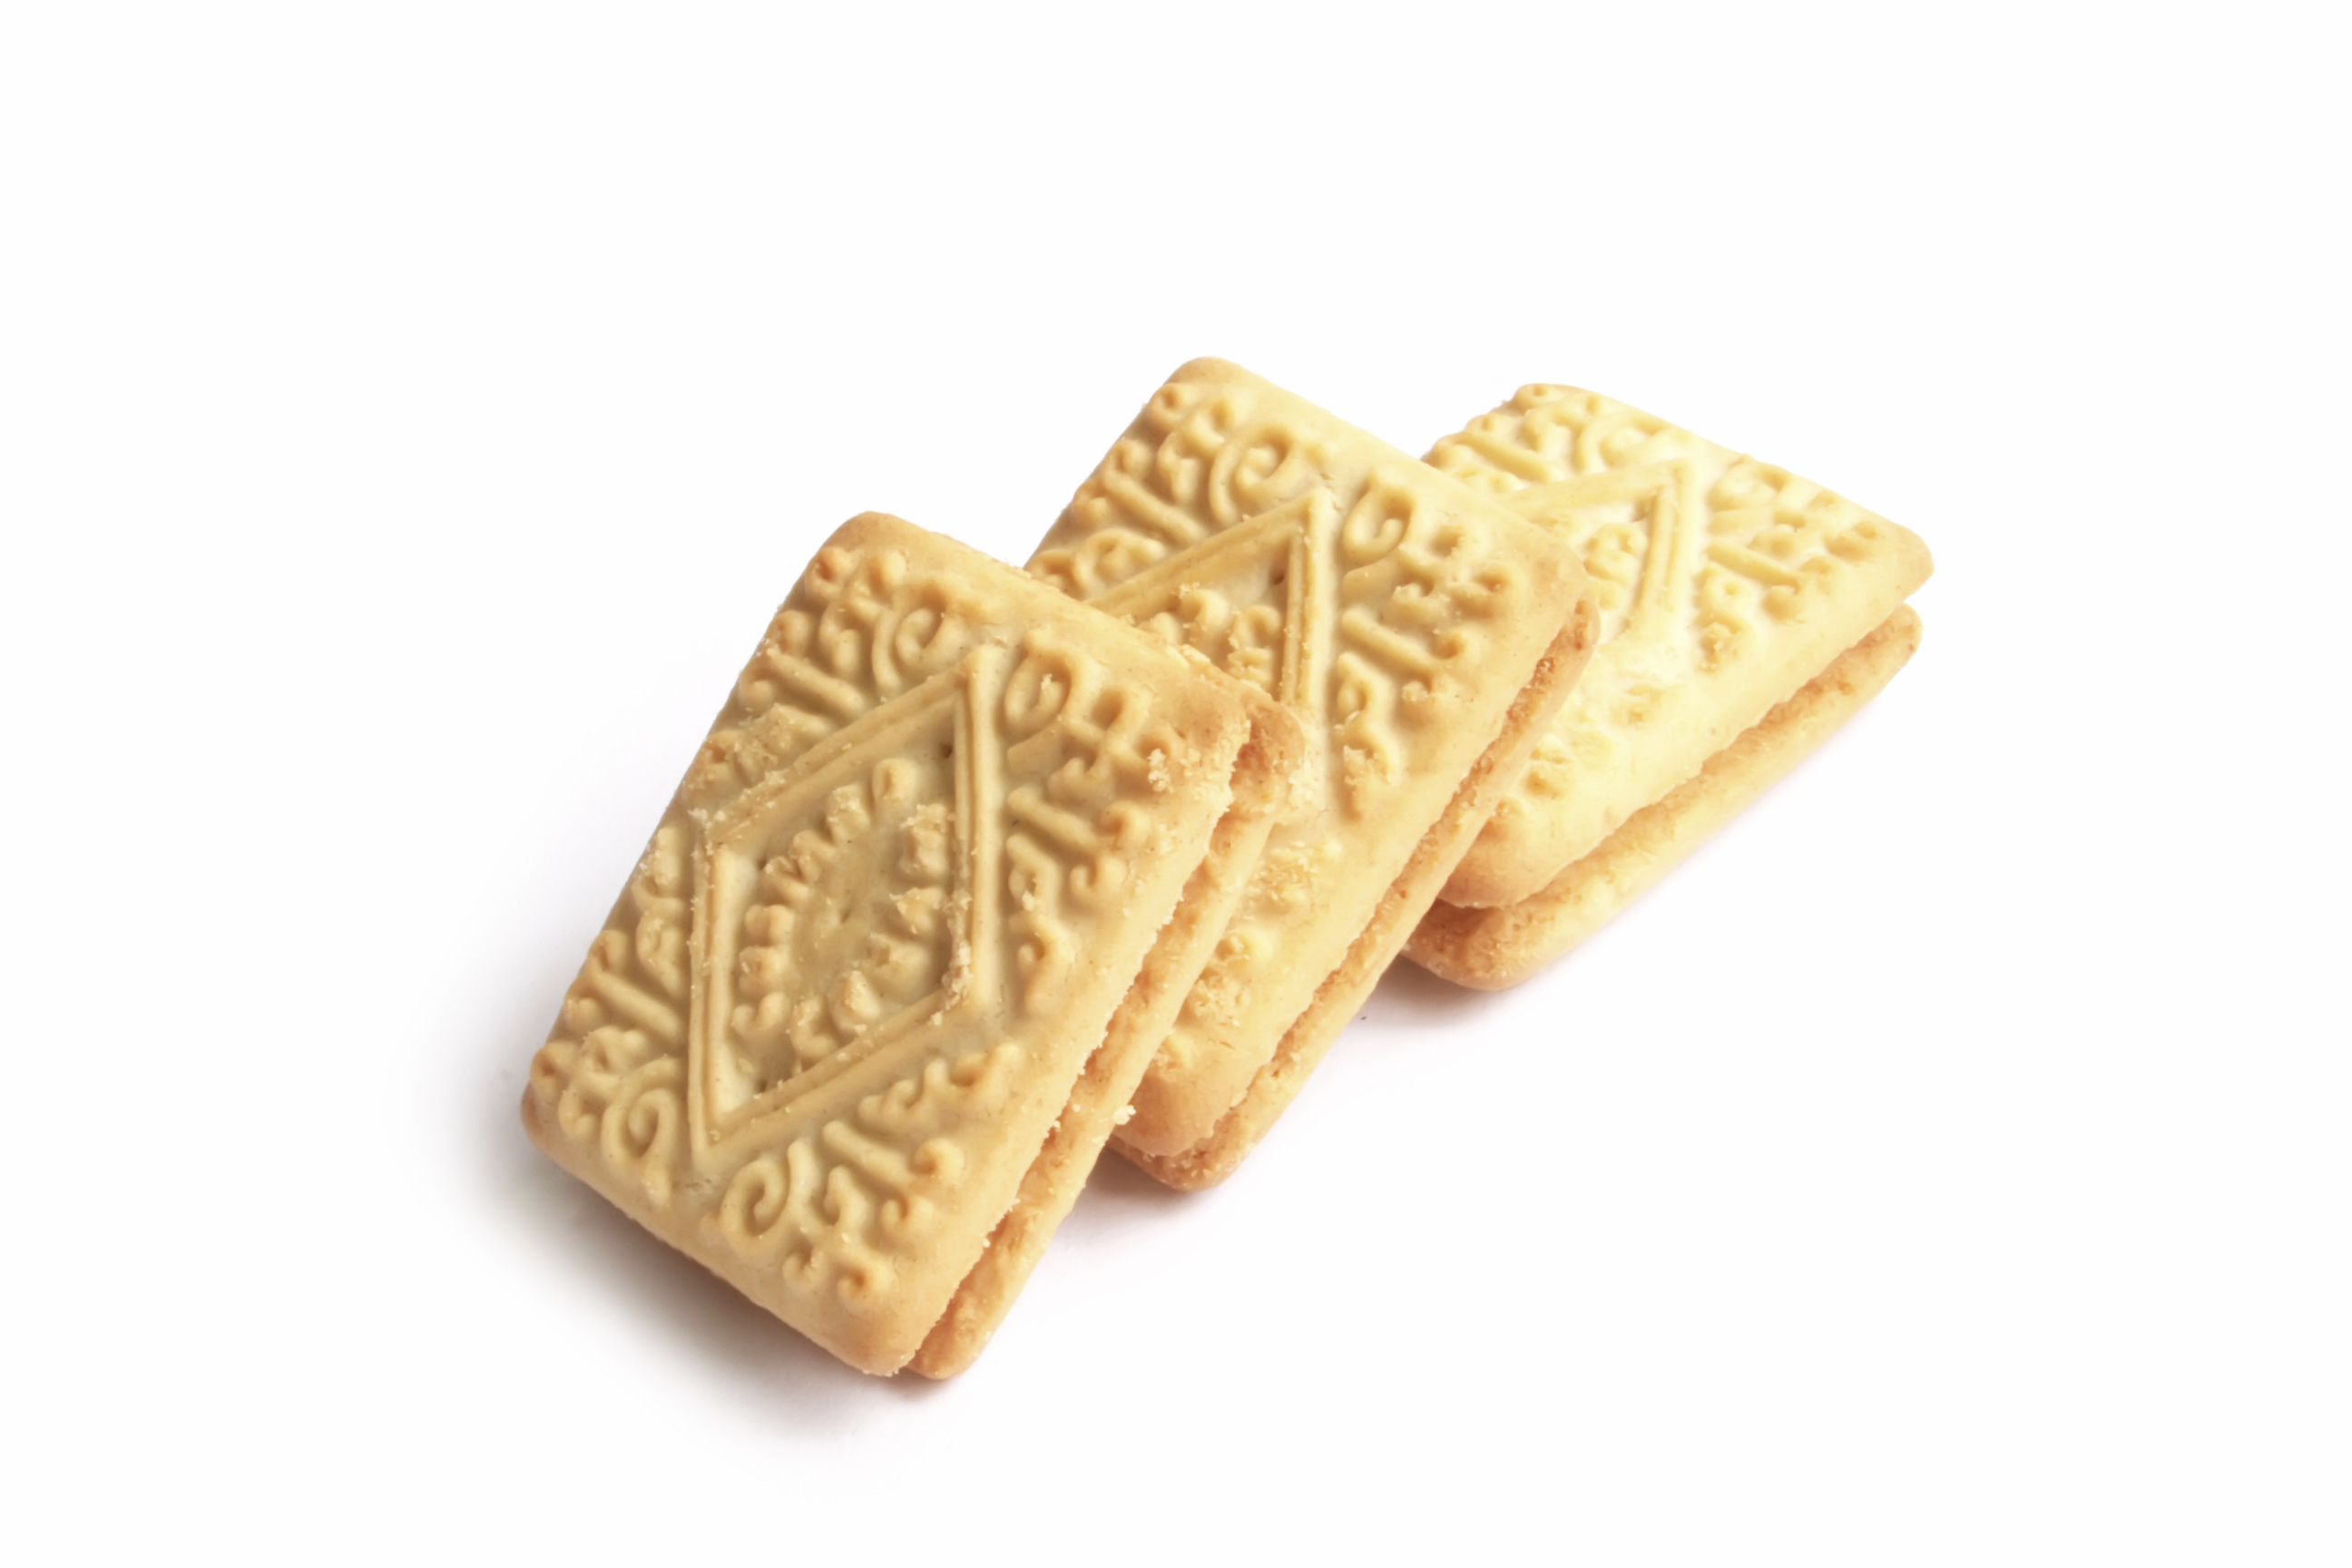 English Tea Time Biscuits Isolated on a White Background